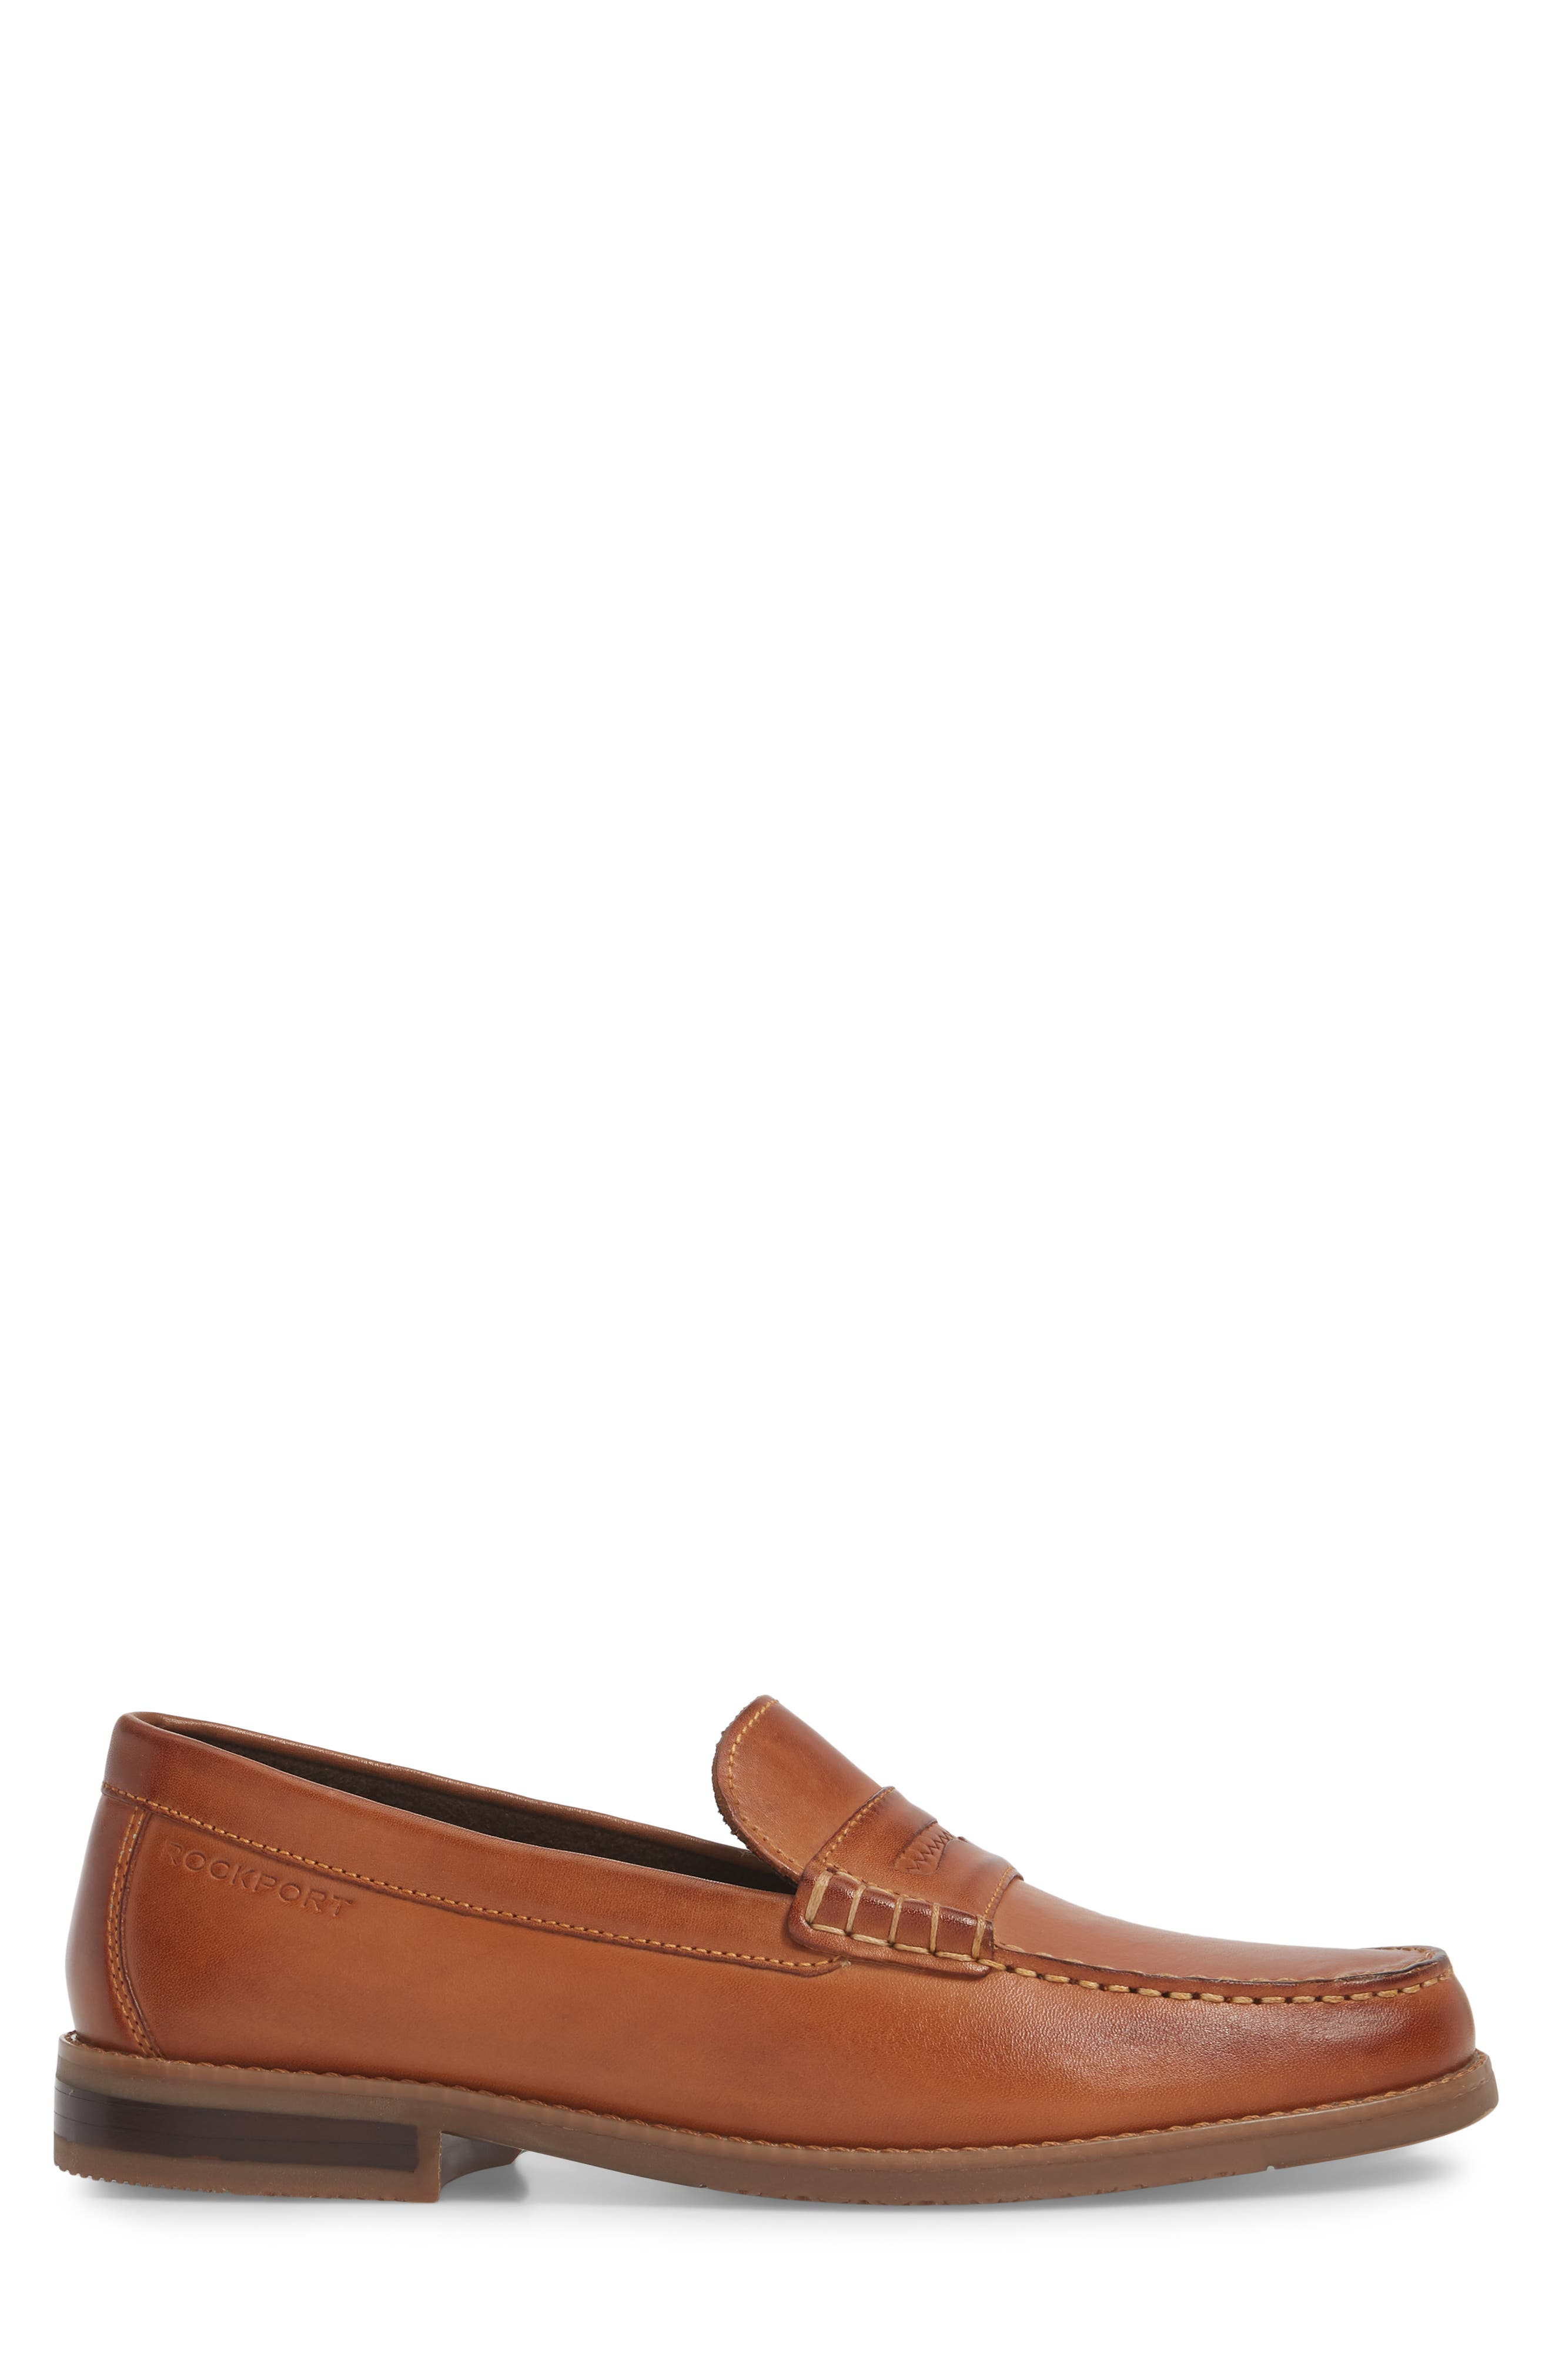 Cayleb Moc Toe Penny Loafer,                             Alternate thumbnail 3, color,                             231